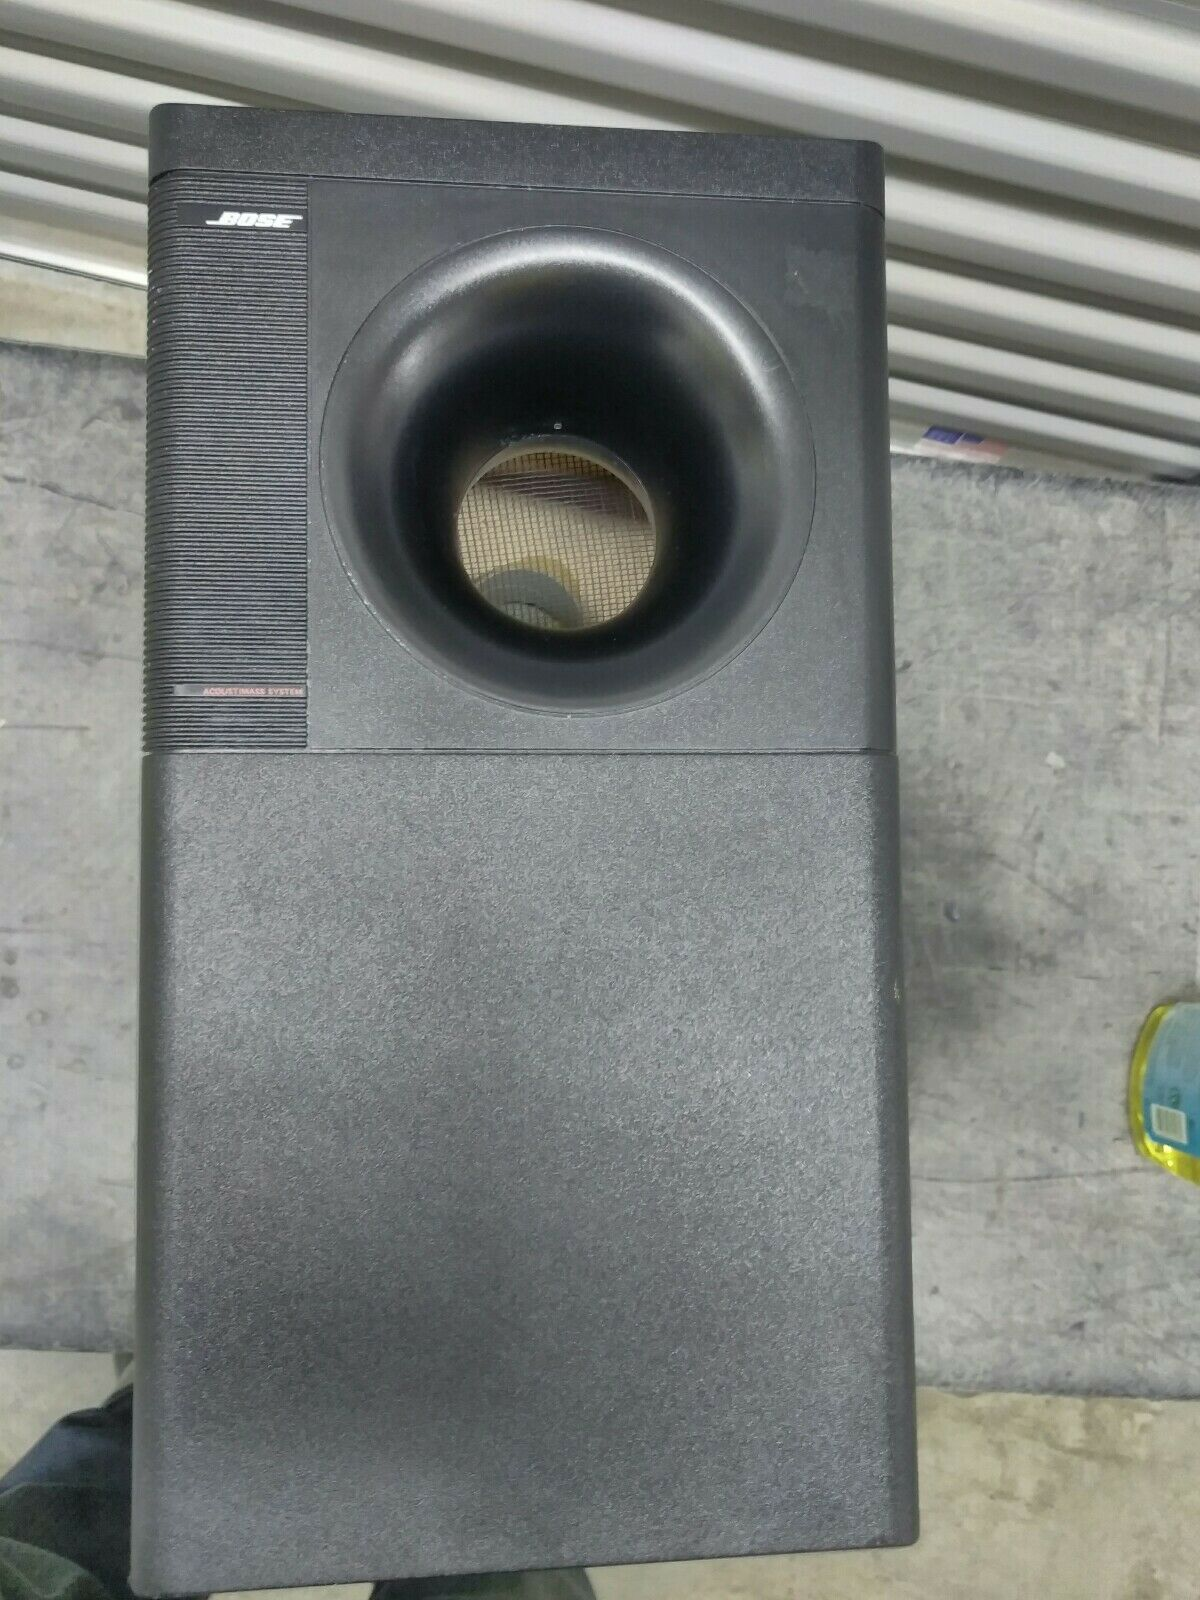 BOSE Acoustimass 5 Series II Direct Reflecting Speaker System Subwoofer Sub Bass